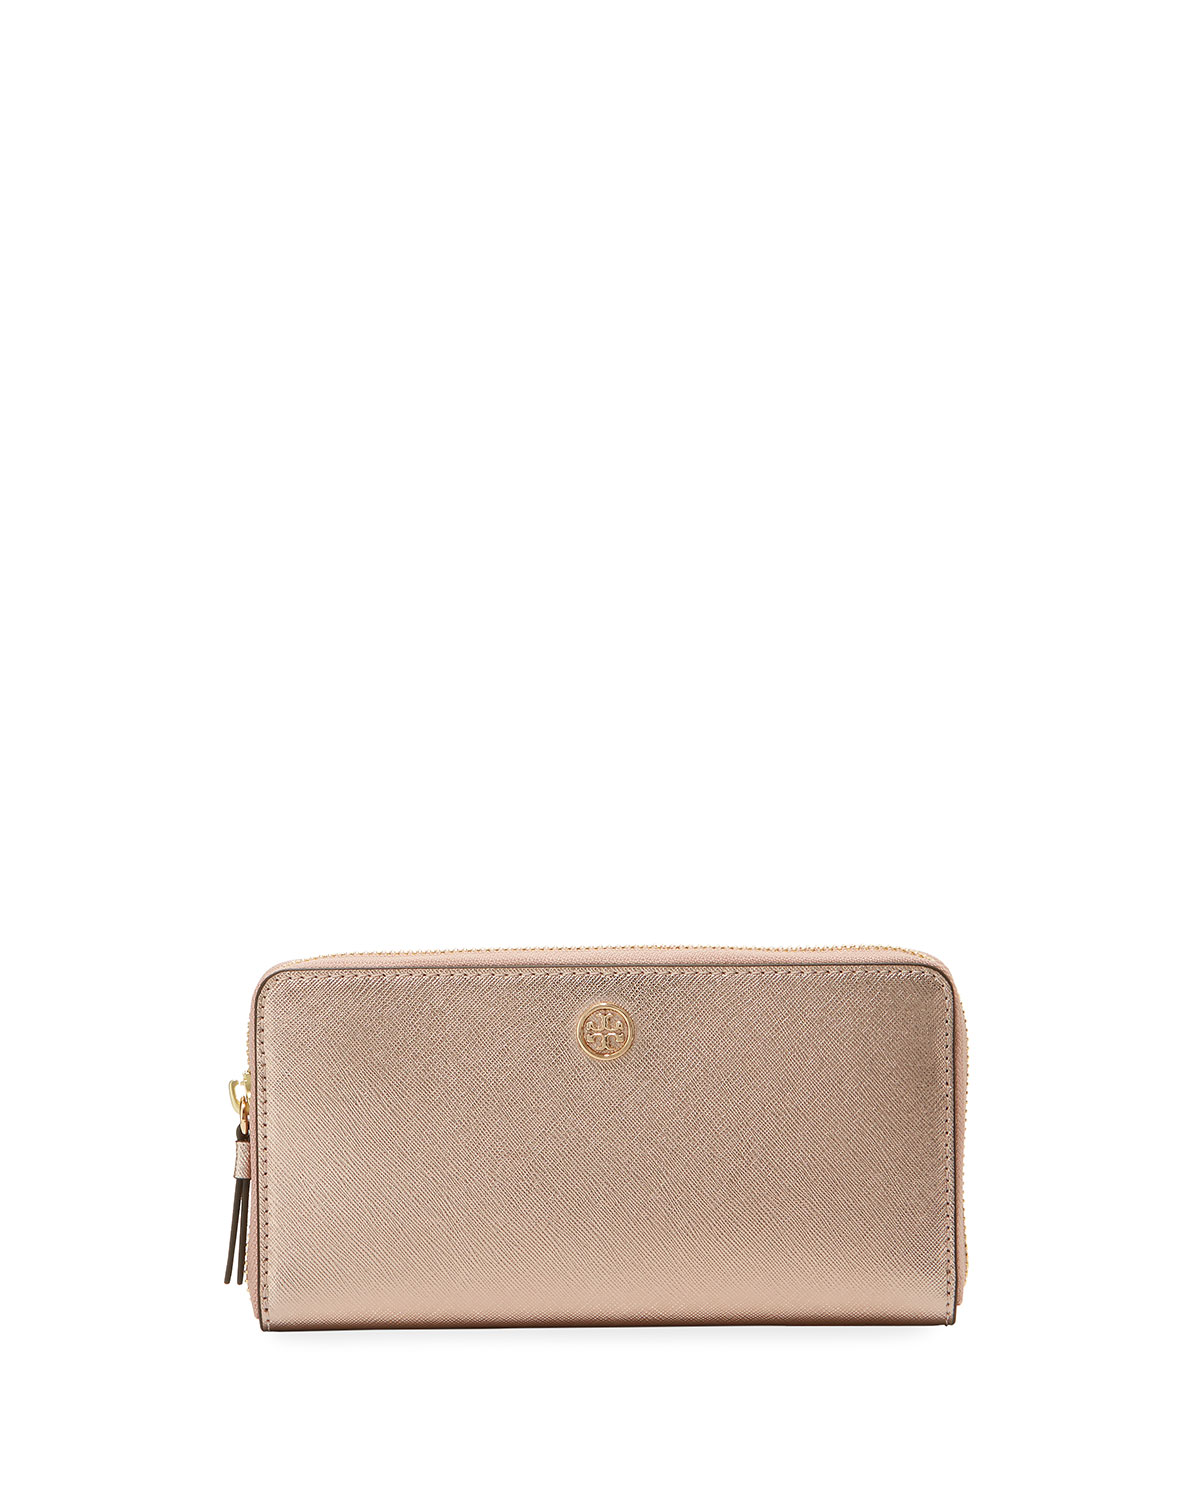 Tory Burch Robinson Metallic Leather Continental Zip Wallet